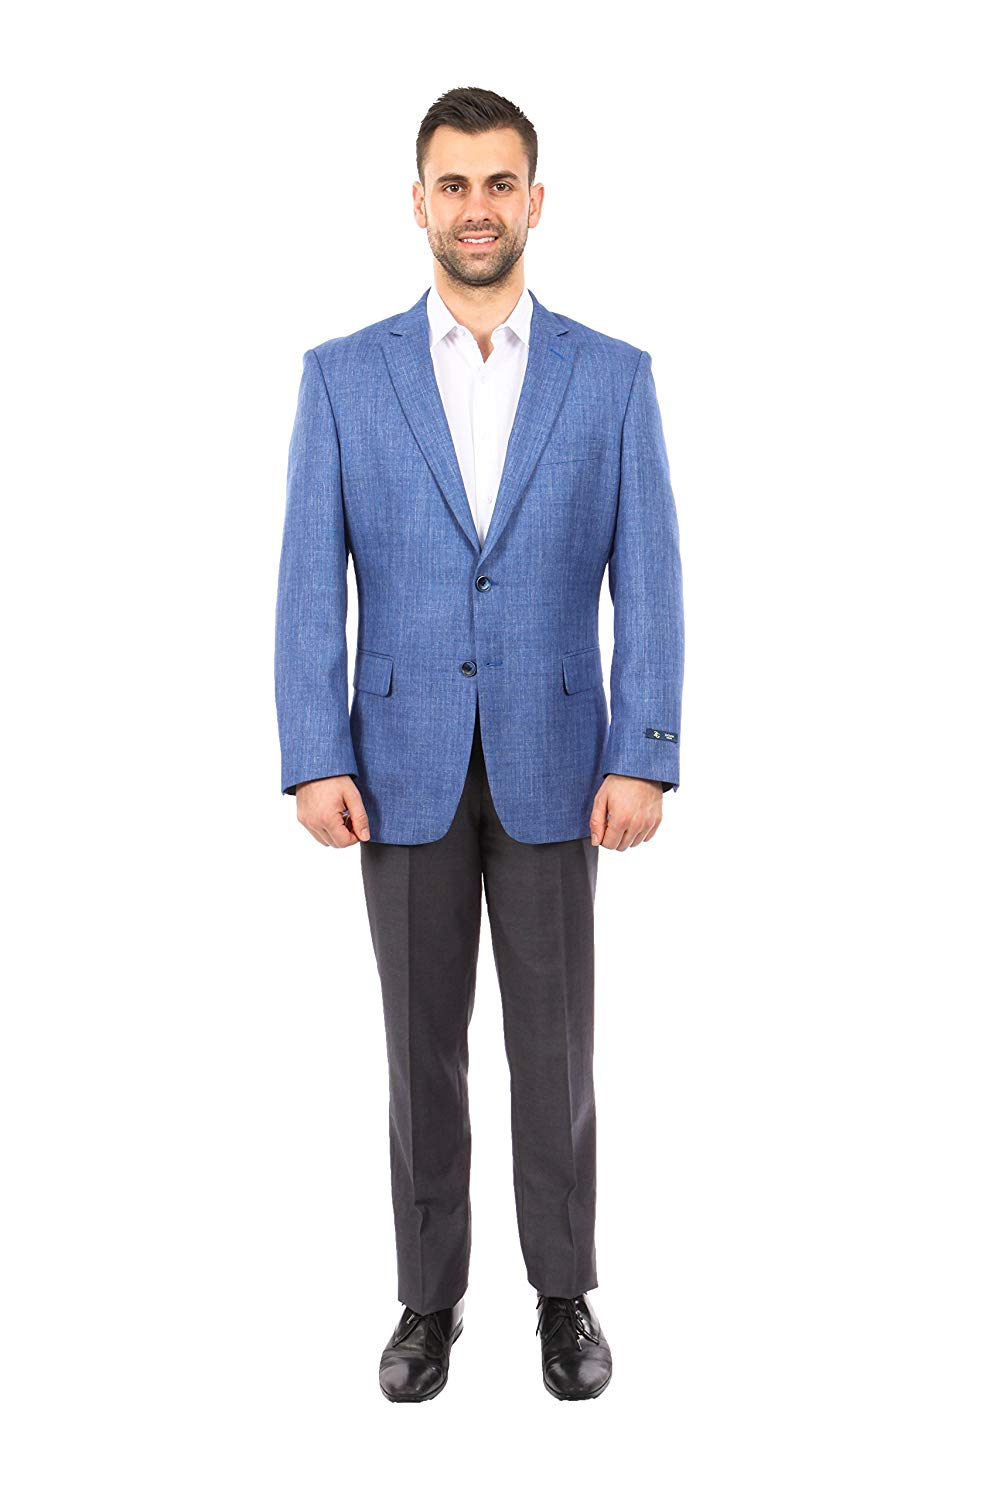 TAZIO Mens Jacket Modern Fit Textured Solid Sports Coat Blazer